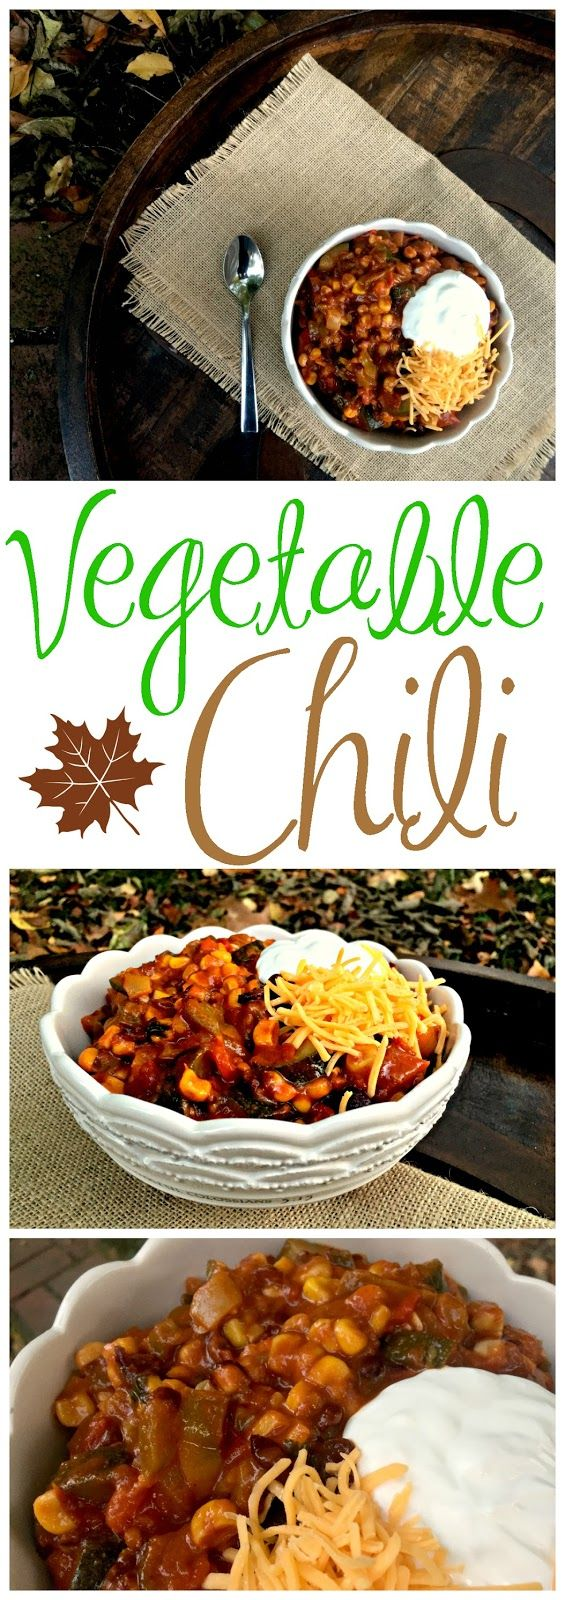 The most delicious Vegetable Chili